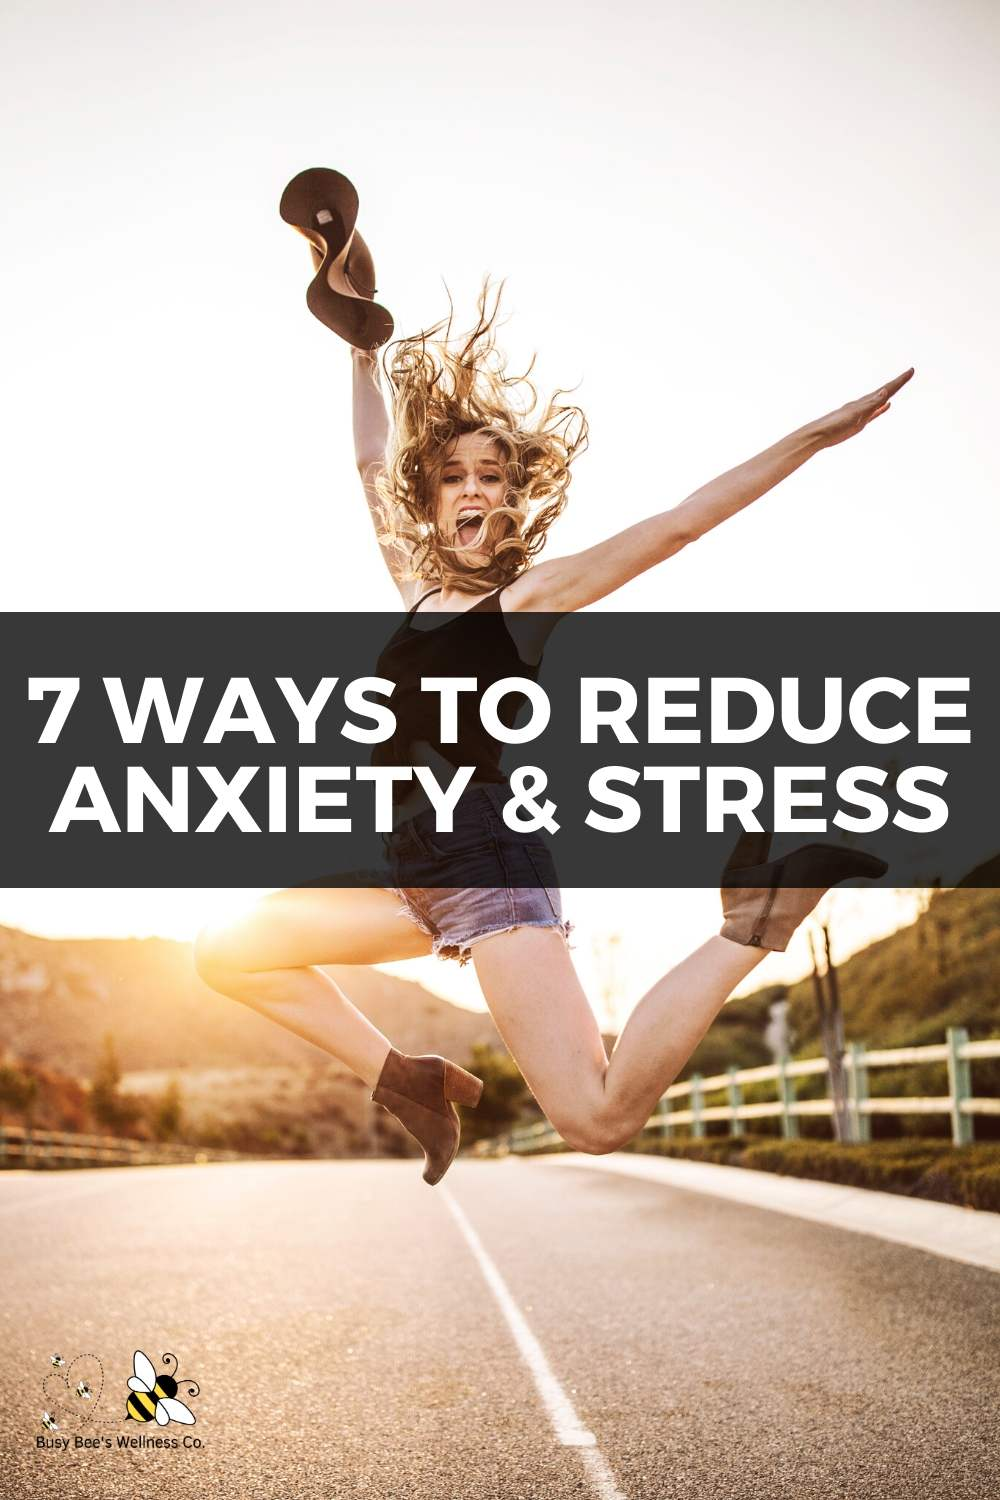 Here are 7 ways to reduce anxiety and stress naturally